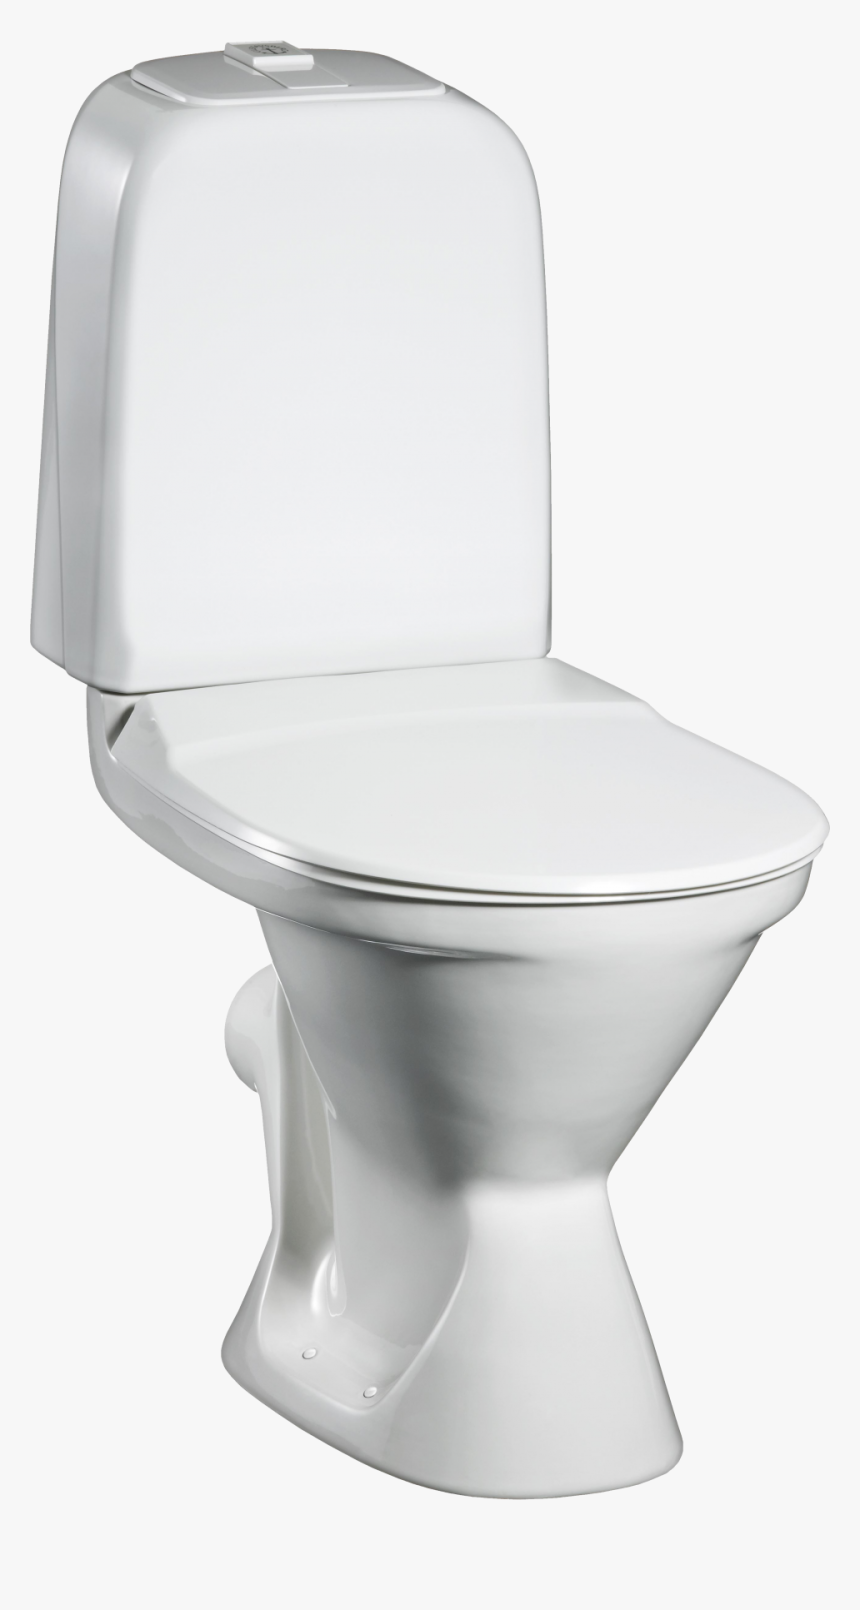 Toilet Png Image - Chair, Transparent Png, Free Download